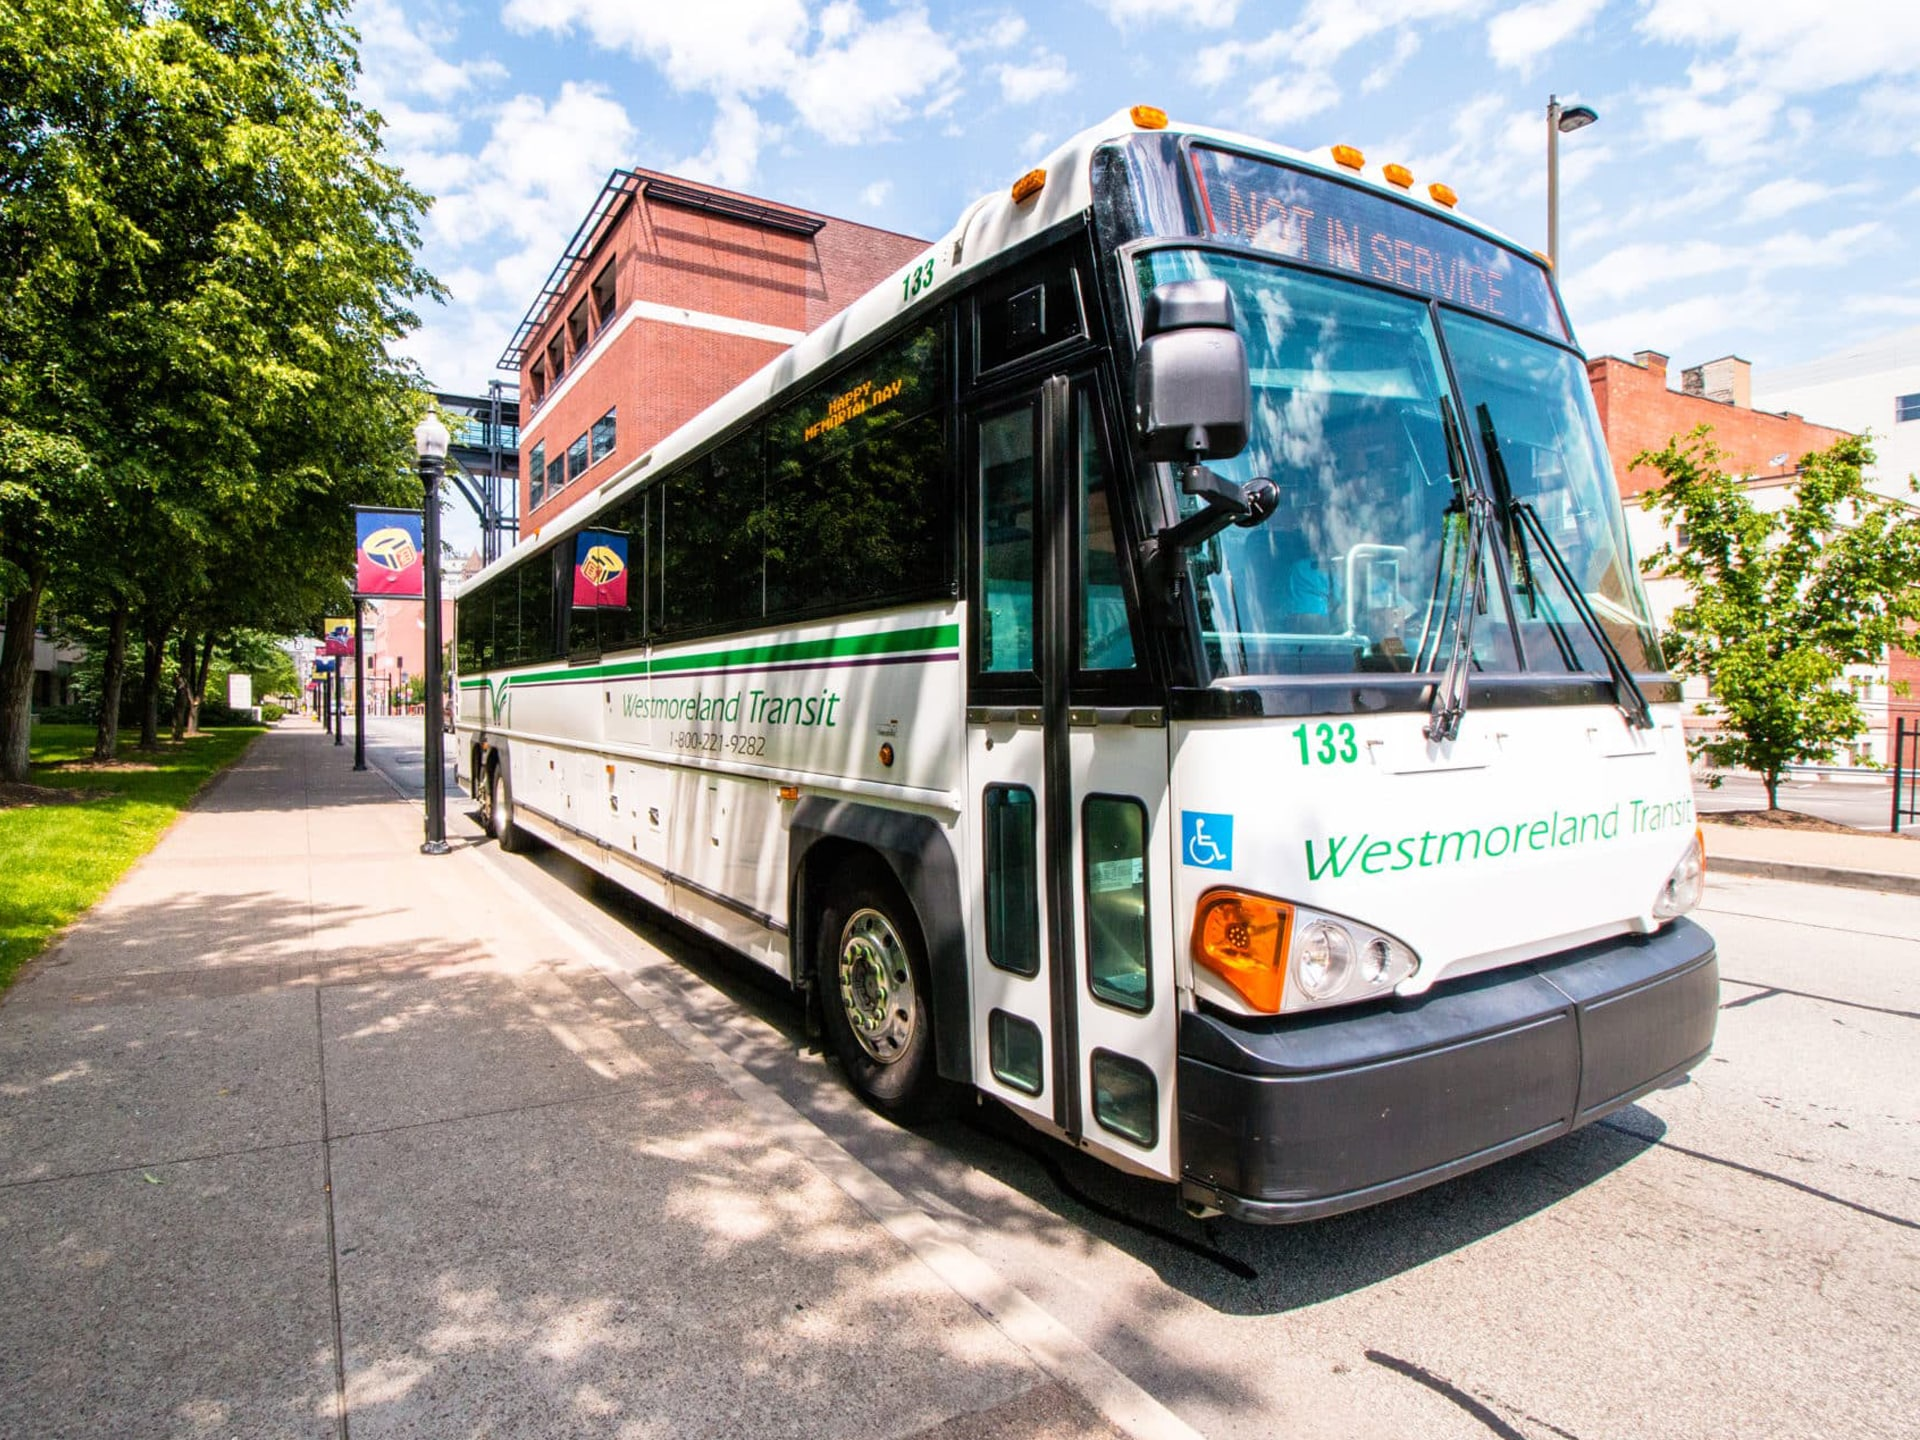 WCTA bus in Pittsburgh